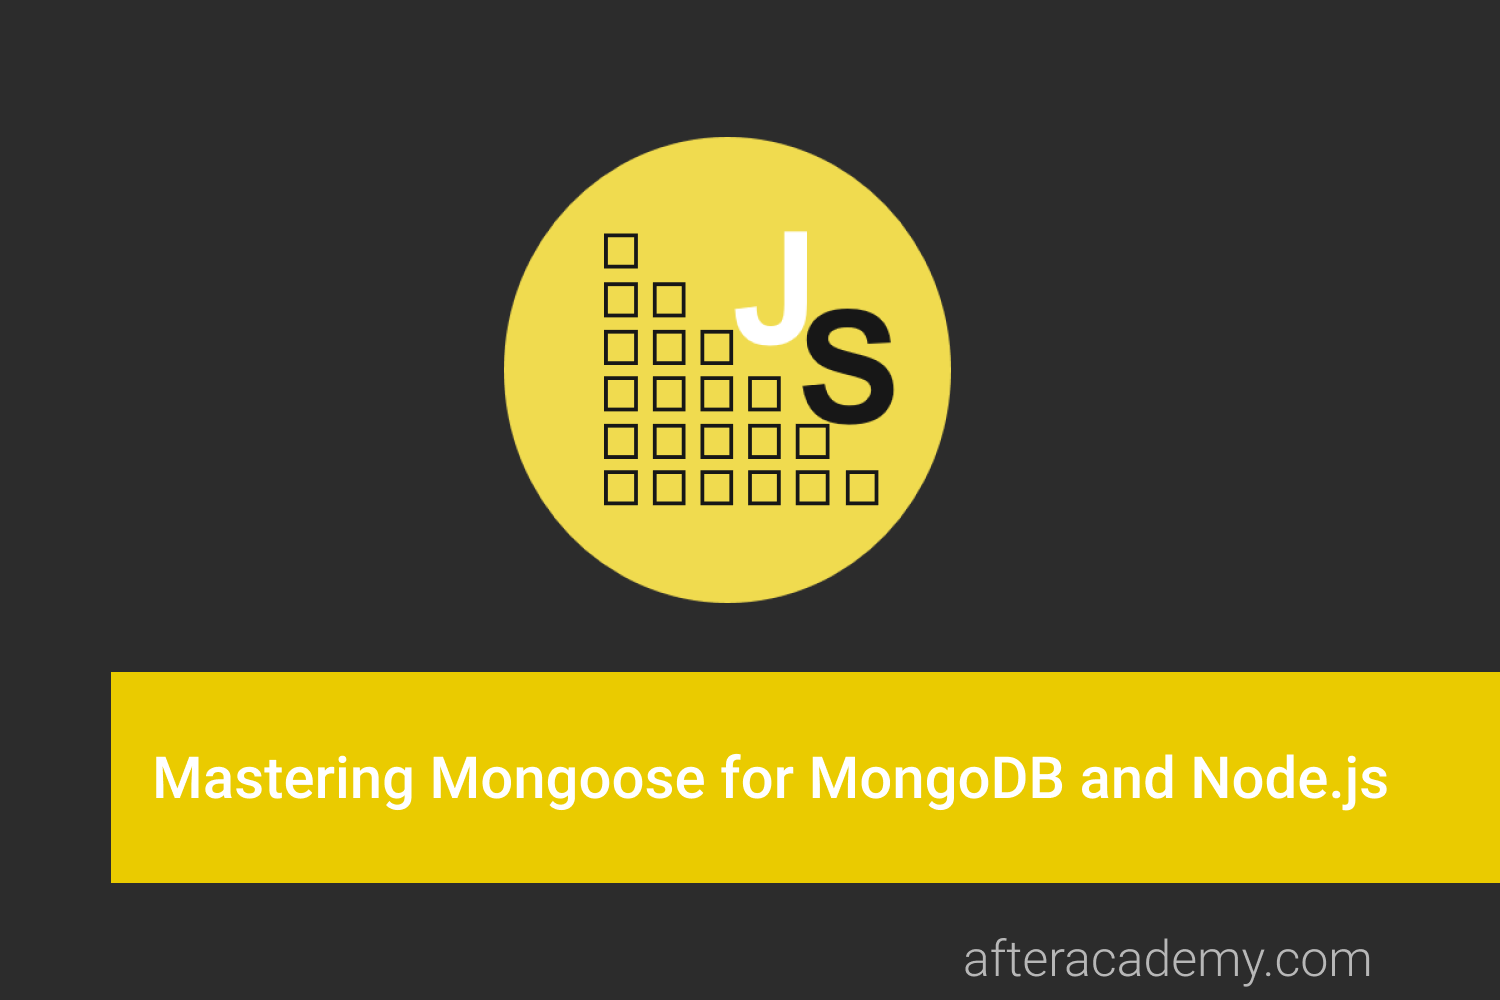 Mastering Mongoose for MongoDB and Nodejs